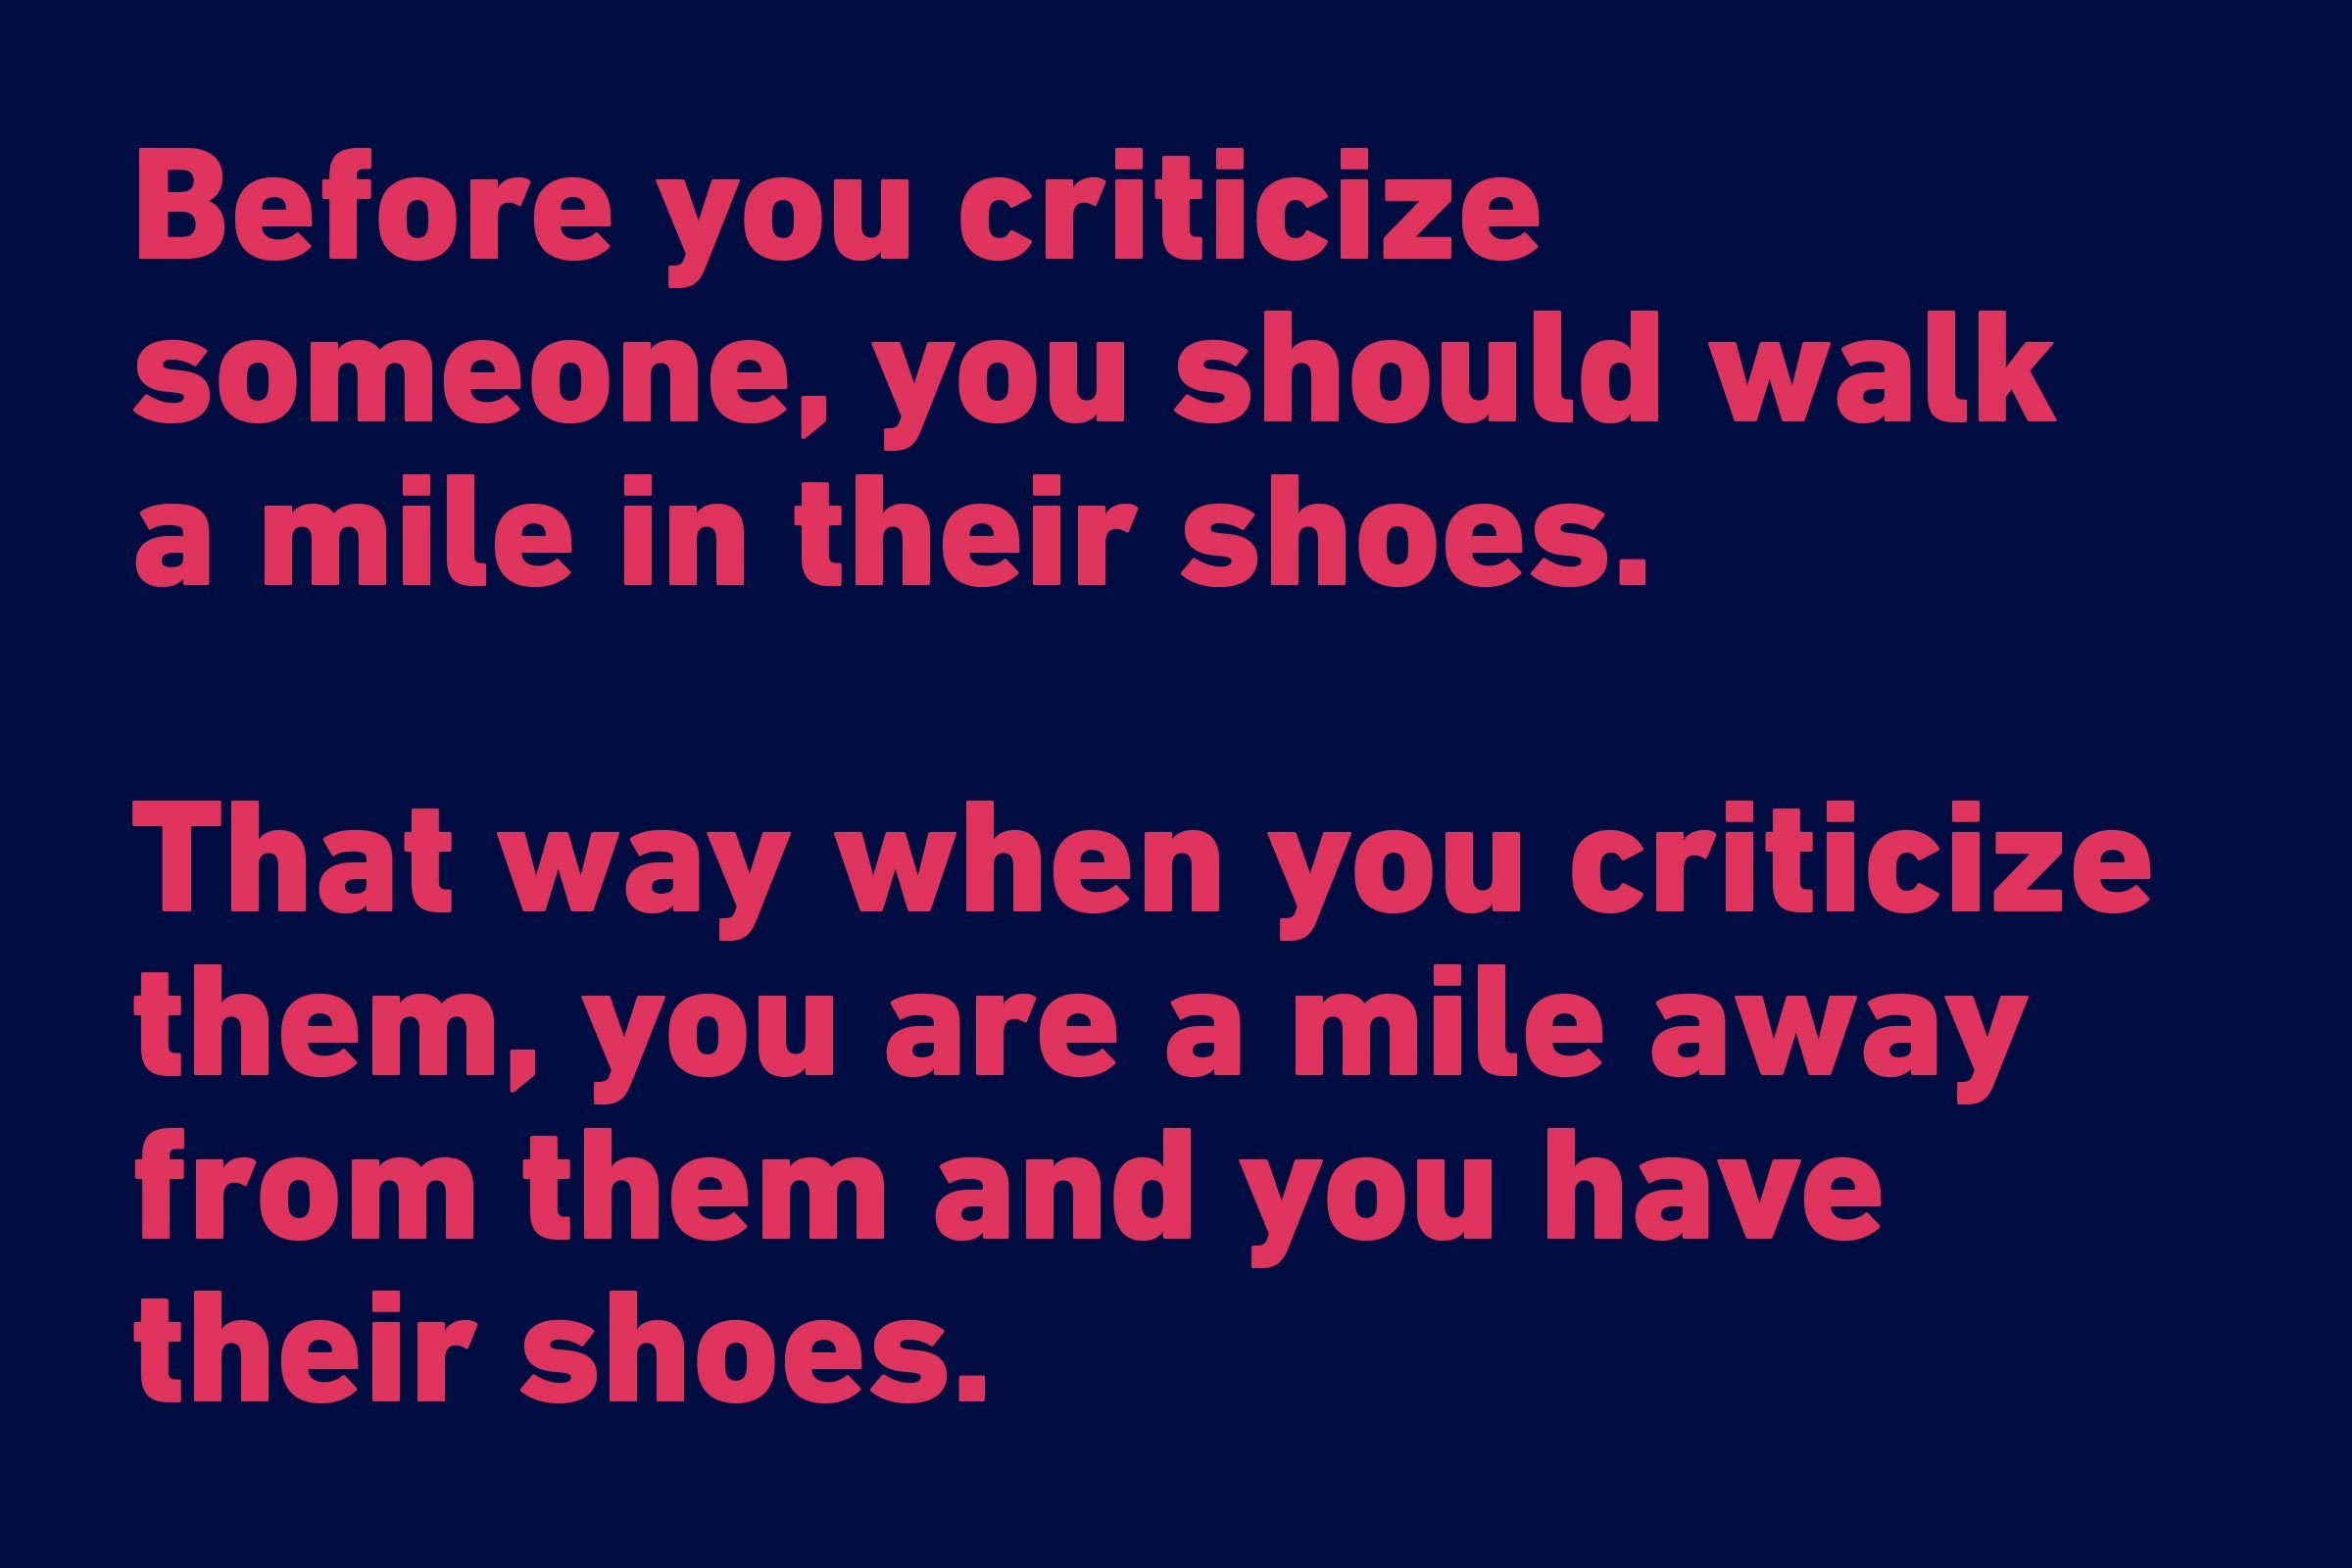 """Before you criticize someone, you should walk a mile in their shoes. That way when you criticize them, you are a mile away from them and you have their shoes."" —Jack Handey"